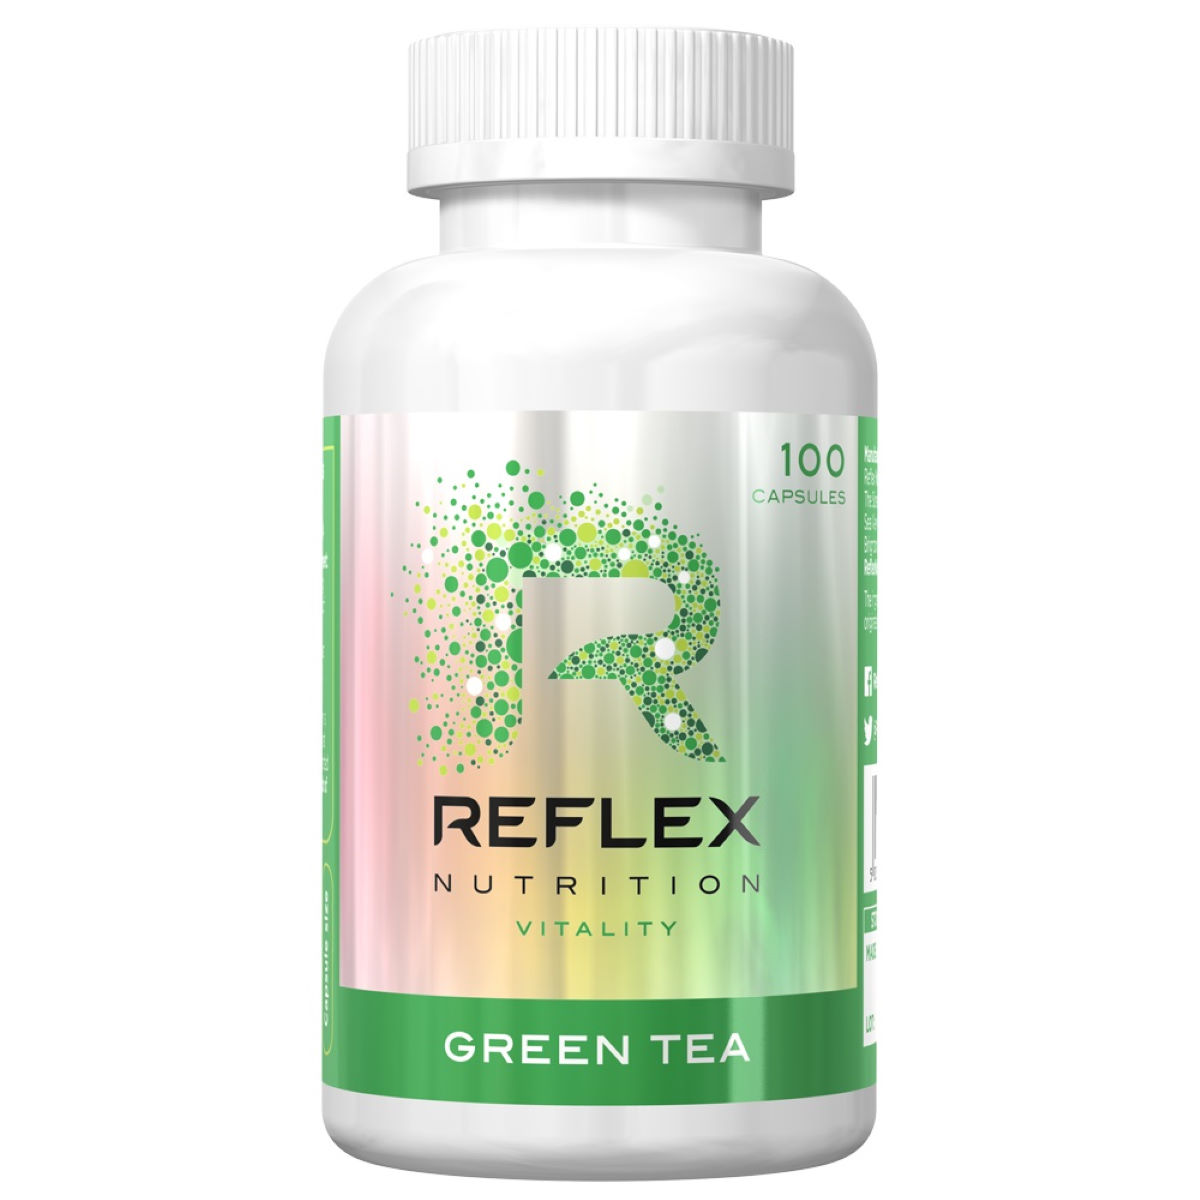 Reflex Reflex Green Tea Extract (100 Capsules)   Super Greens